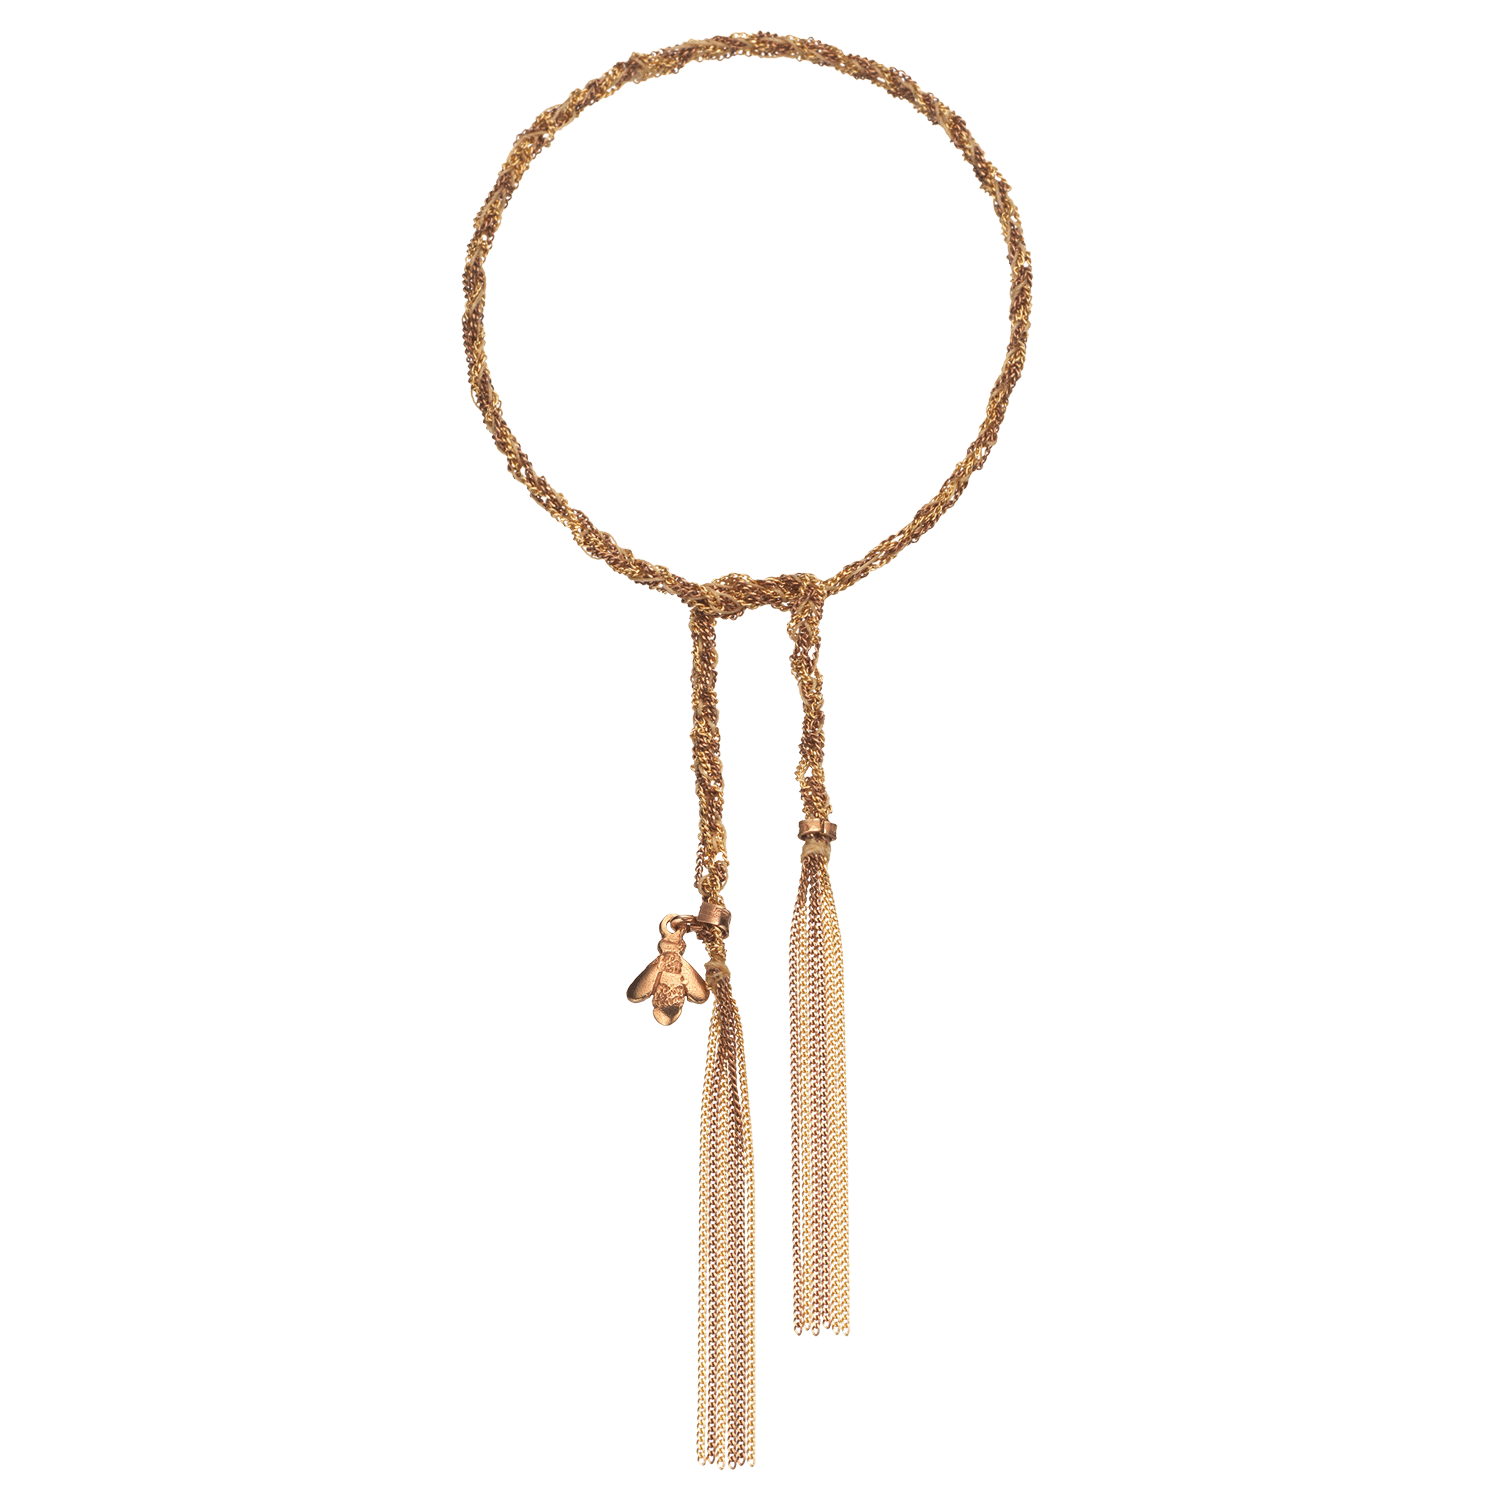 Carolina Bucci Lucky Bracelet with Virtue Charm Pink Gold